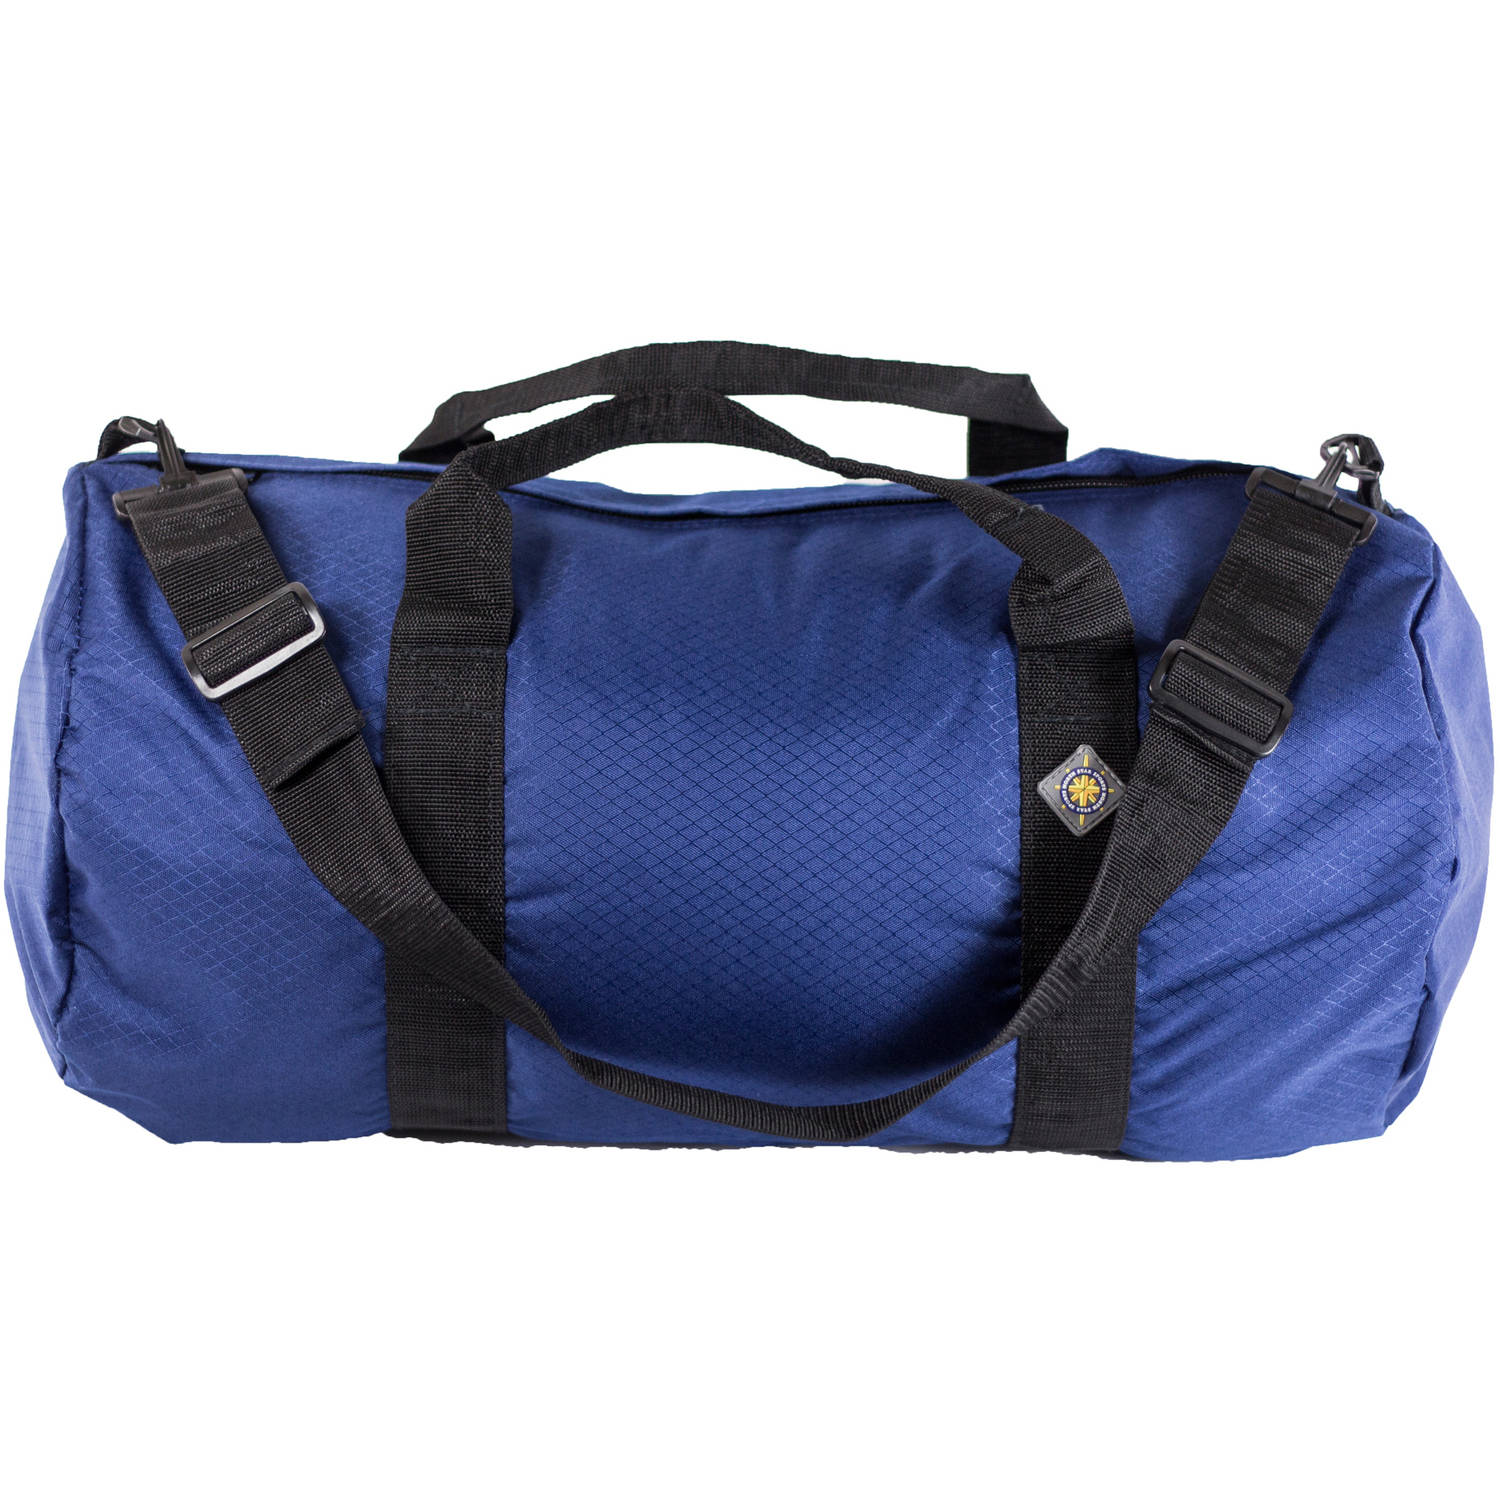 North Star SD 1224 Sport Duffle Bag, Pacific Blue by Northstar Bags